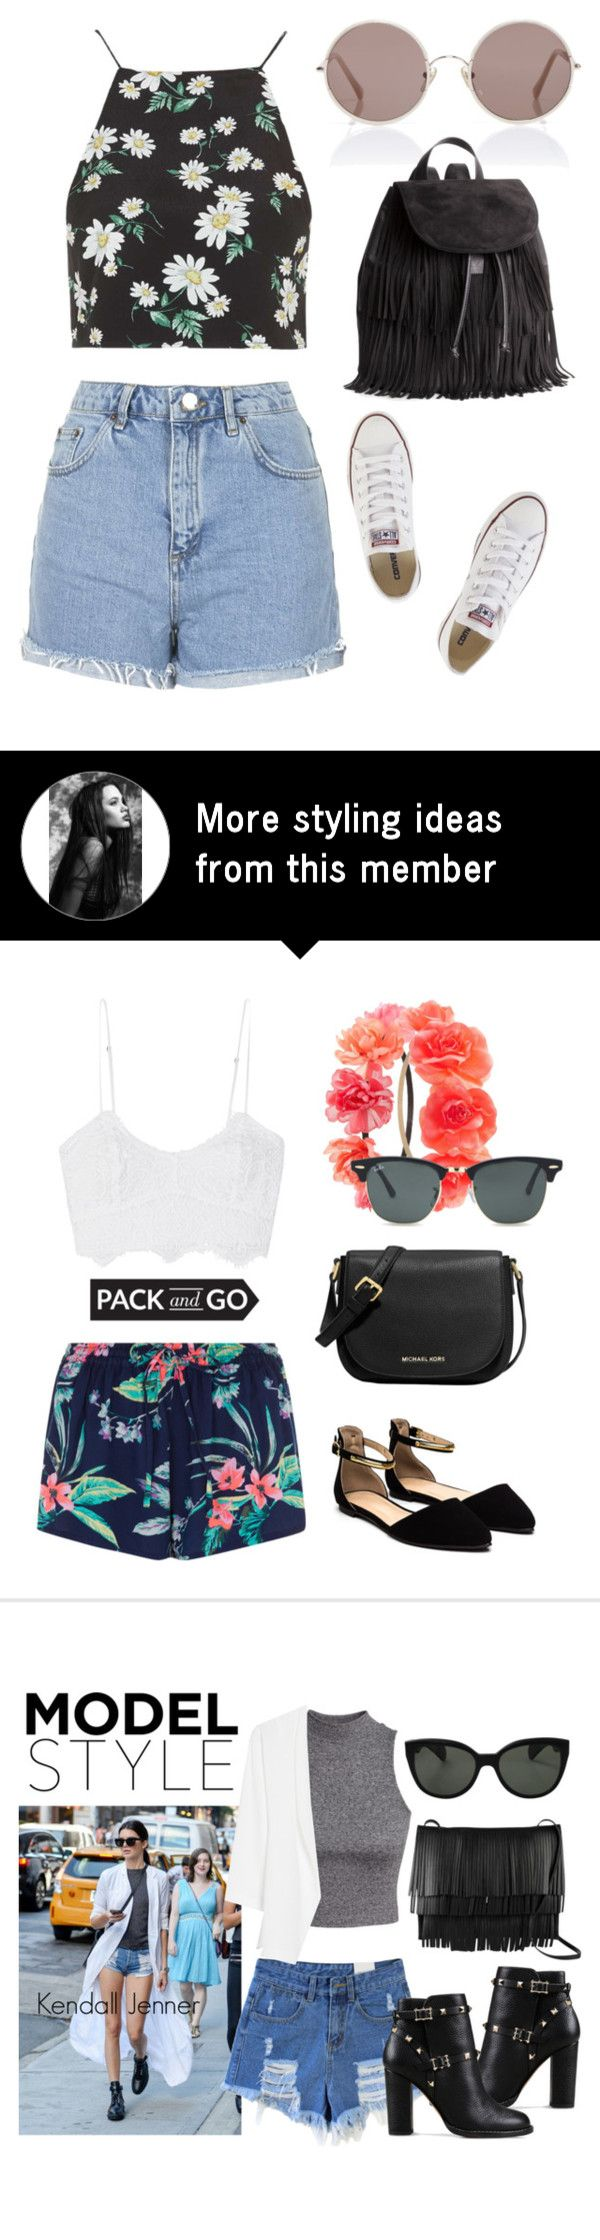 """amusement park"" by horvat-rea on Polyvore"